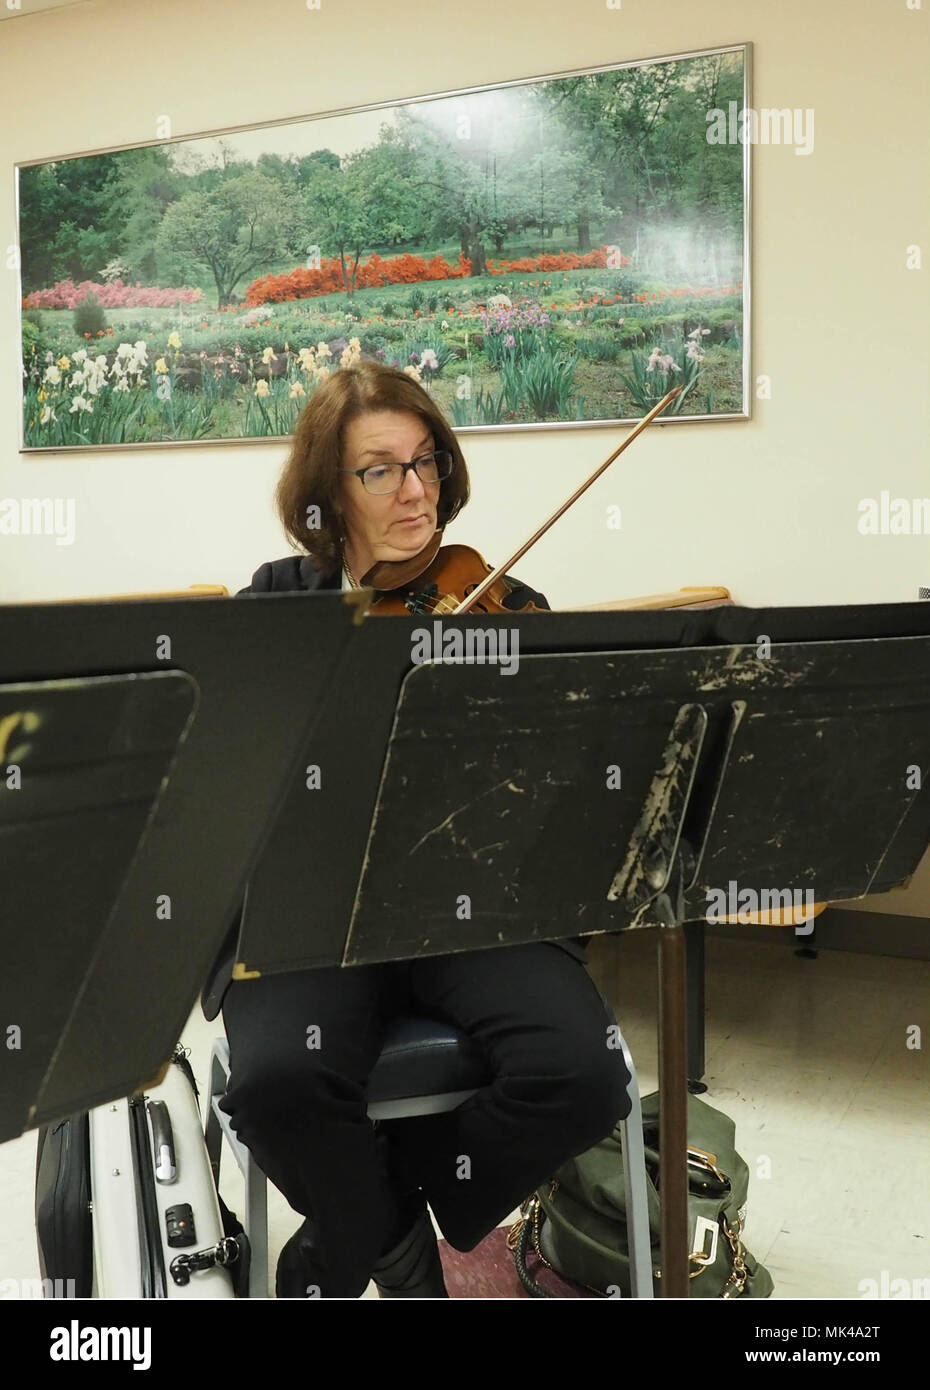 Violinist with the South Carolina Philharmonic, Mary Lee Kinosian, intently serenades listeners at the Dorn VA Medical Center, Nov. 7. - Stock Image